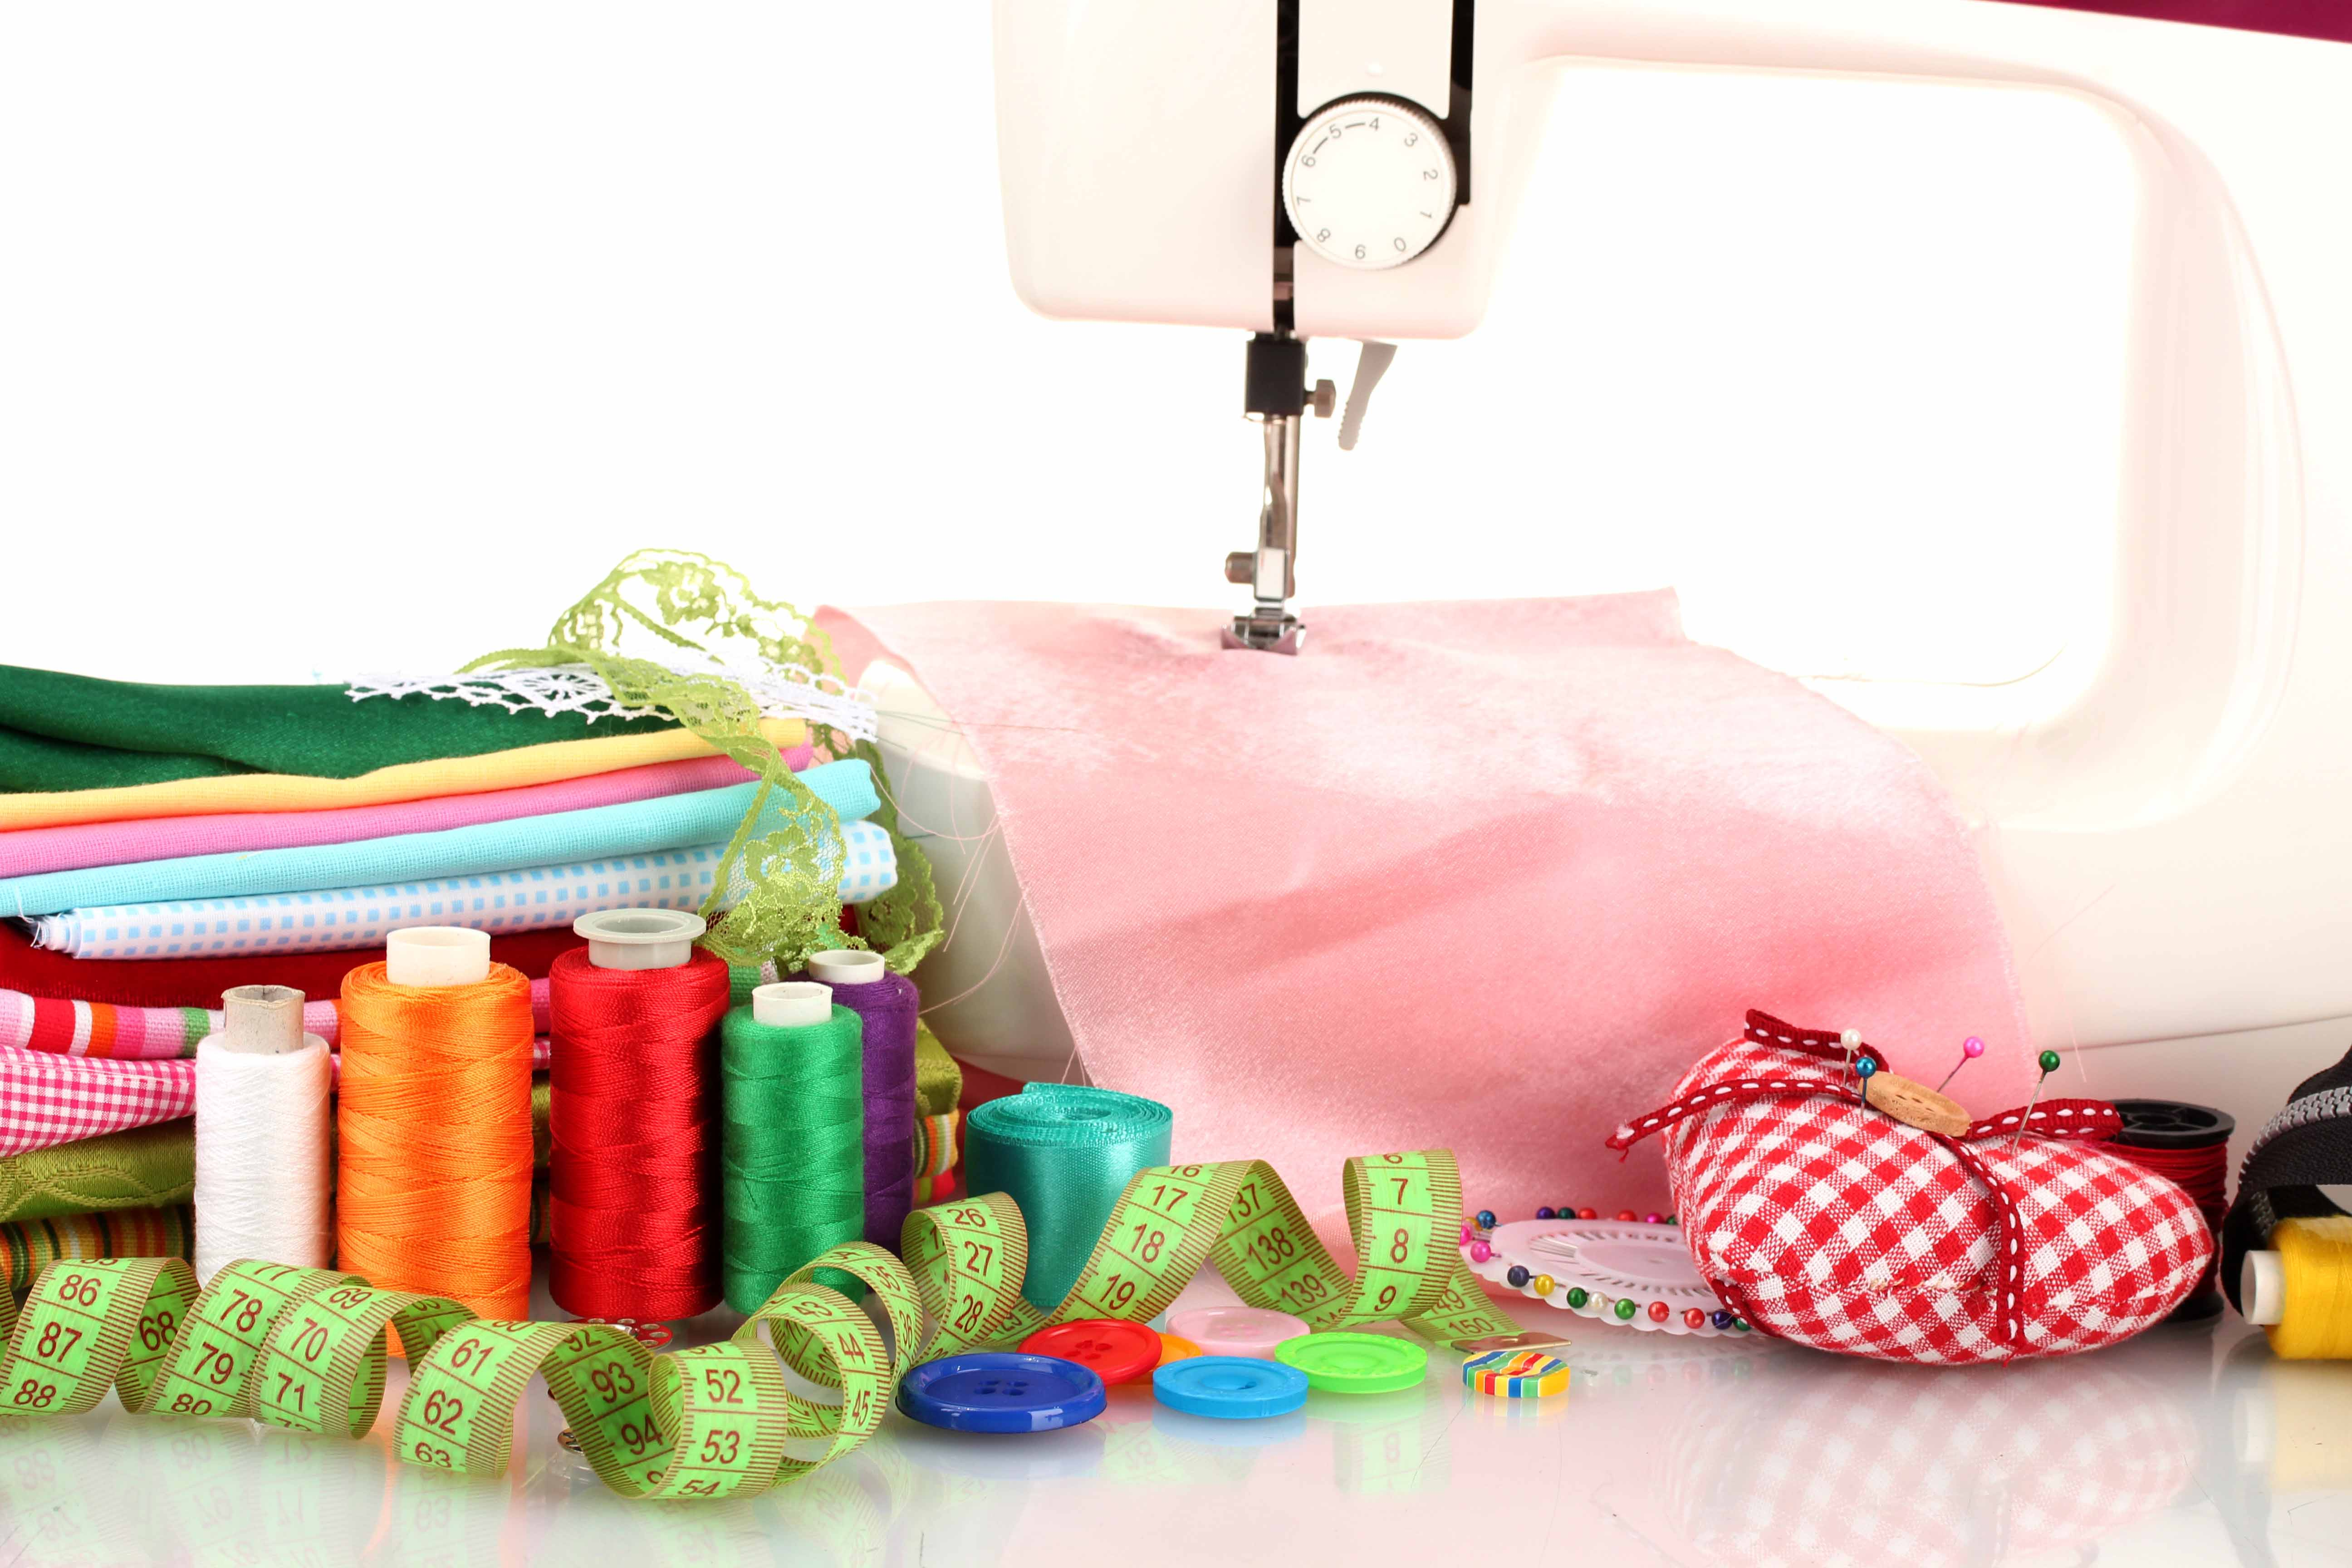 Banking up on sewing skills for the beginner - Craft Everyday